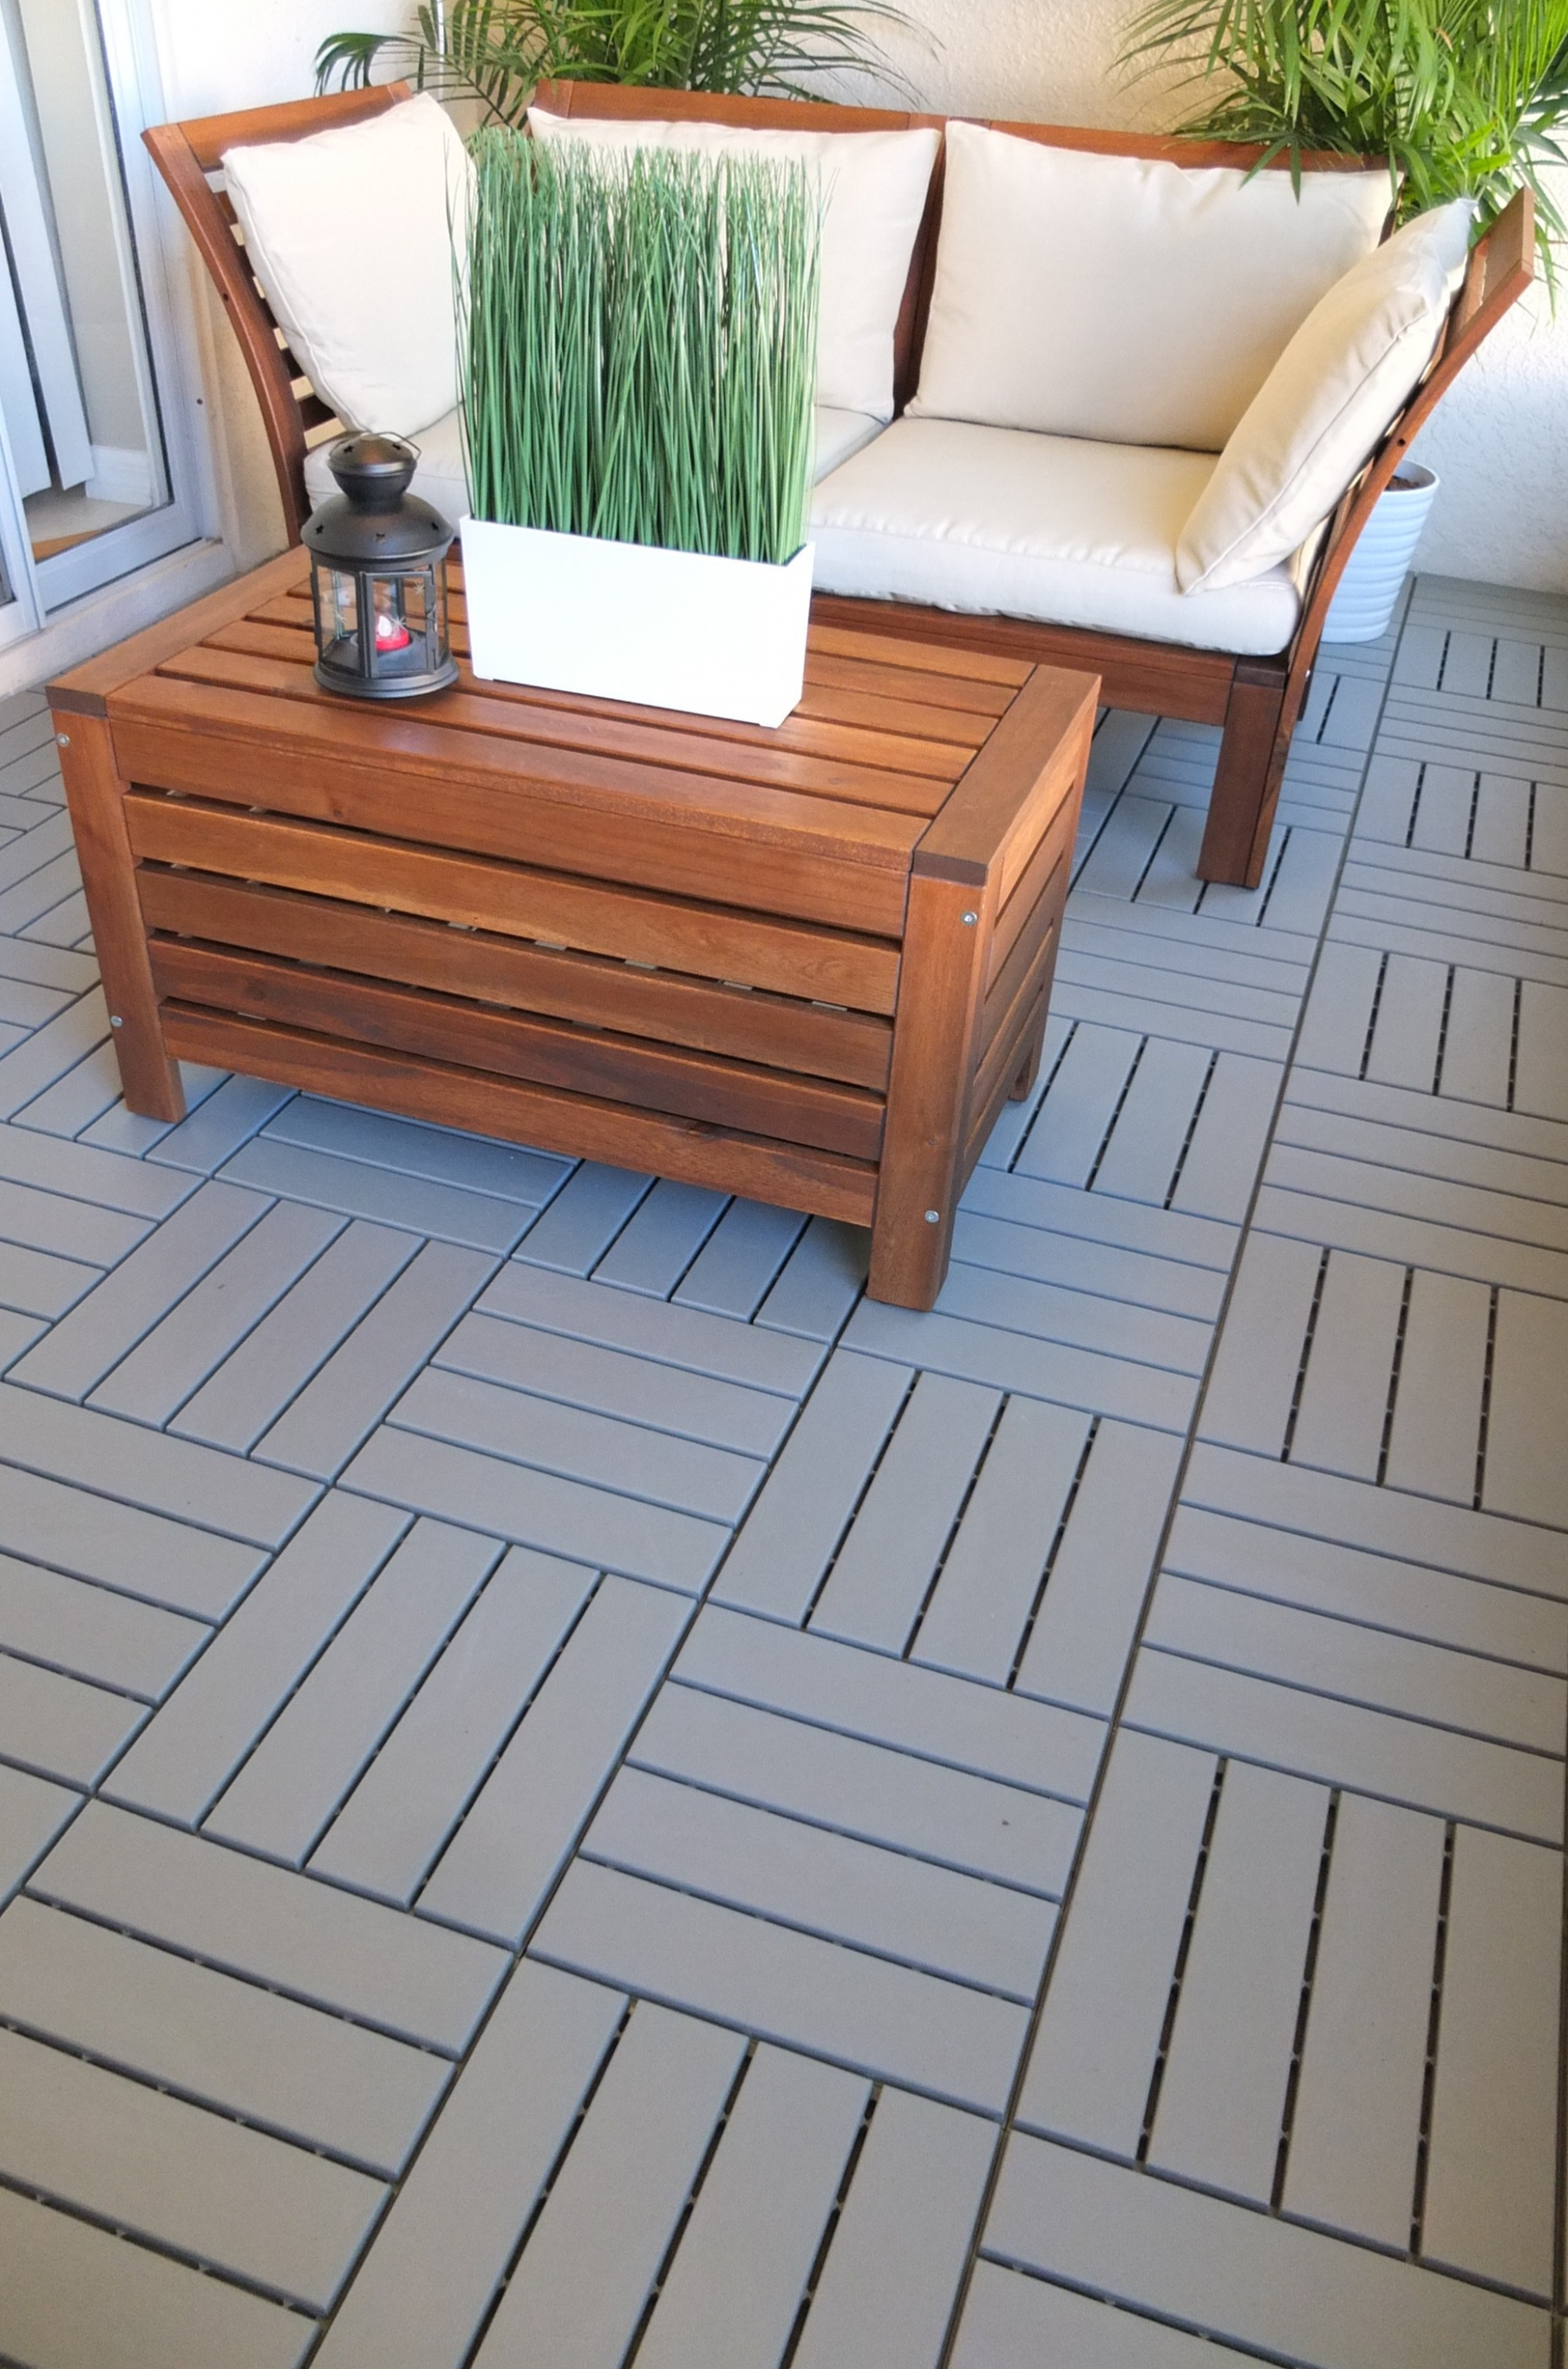 RUNNEN Decking, outdoor - gray 9 sq feet (With images) | Patio ...